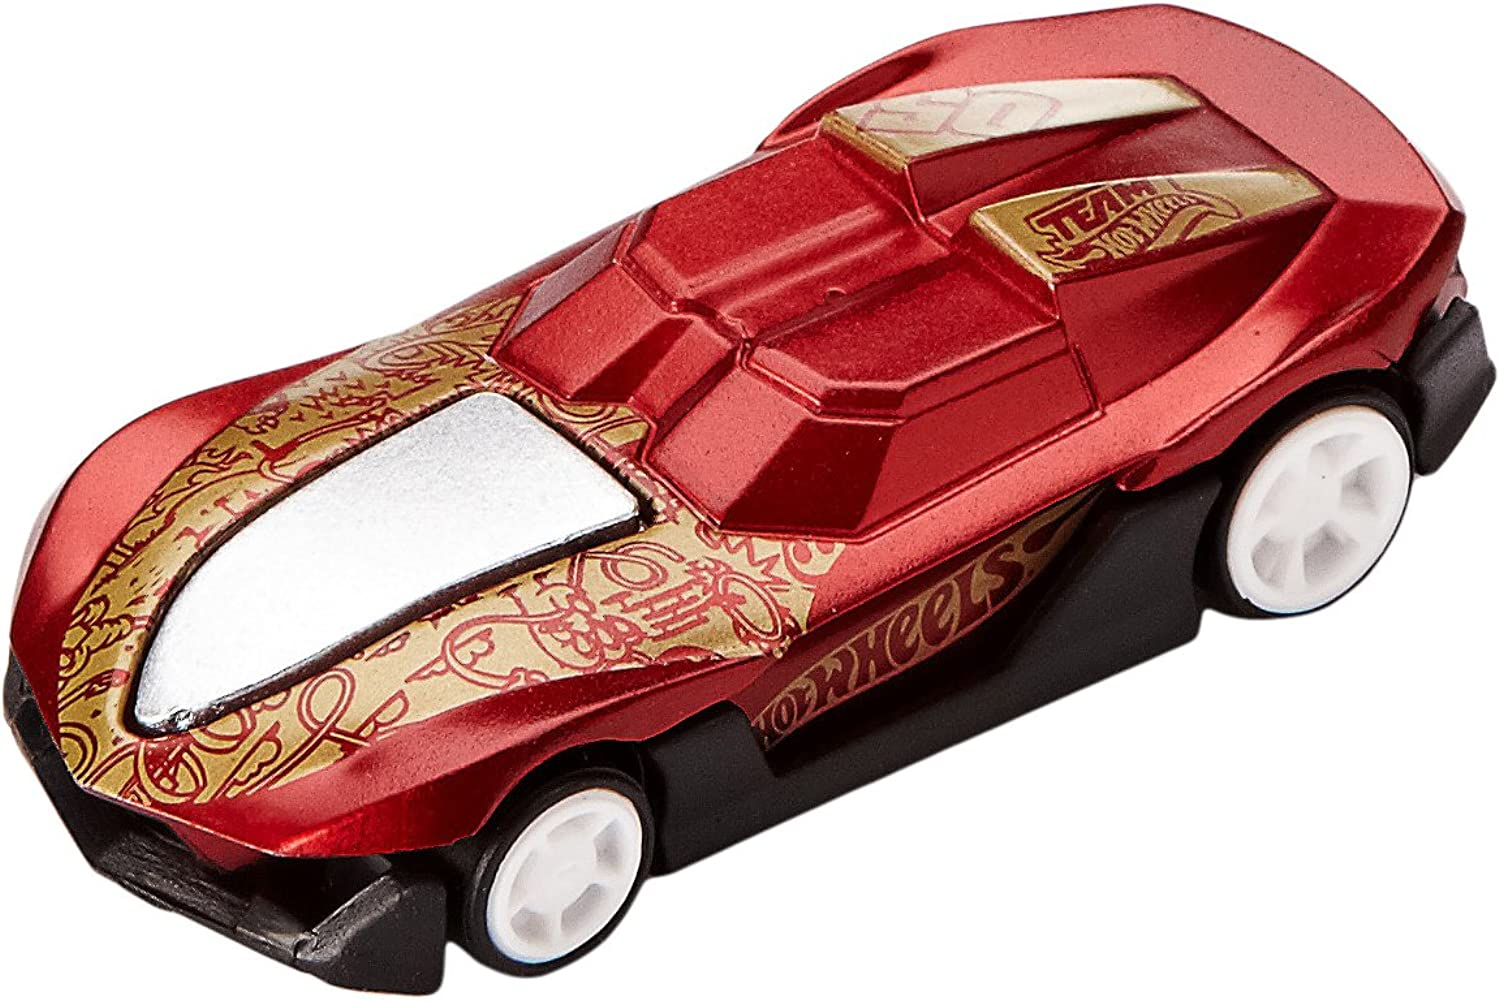 Mattel X3155 - Hot Wheels Apptivity iCar Yer so fast, Digitales Rennspiel für iPad